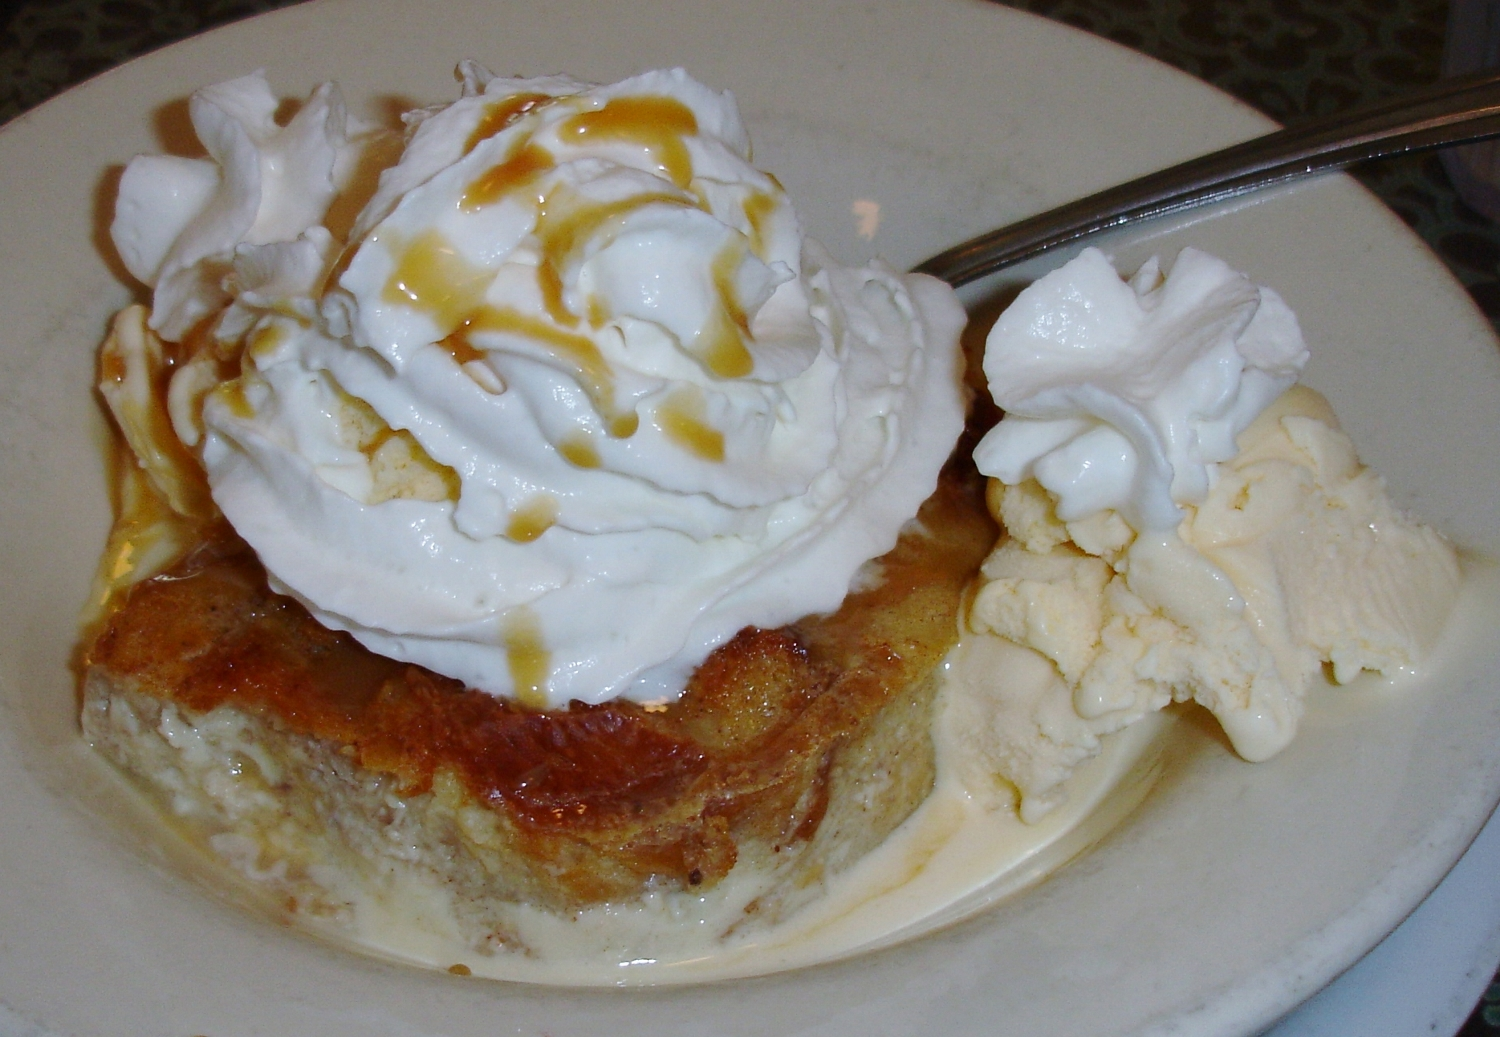 Ultimate Bread Pudding ups the ante with maple-candied pecans, ice cream, whipped cream, and caramel drizzle.